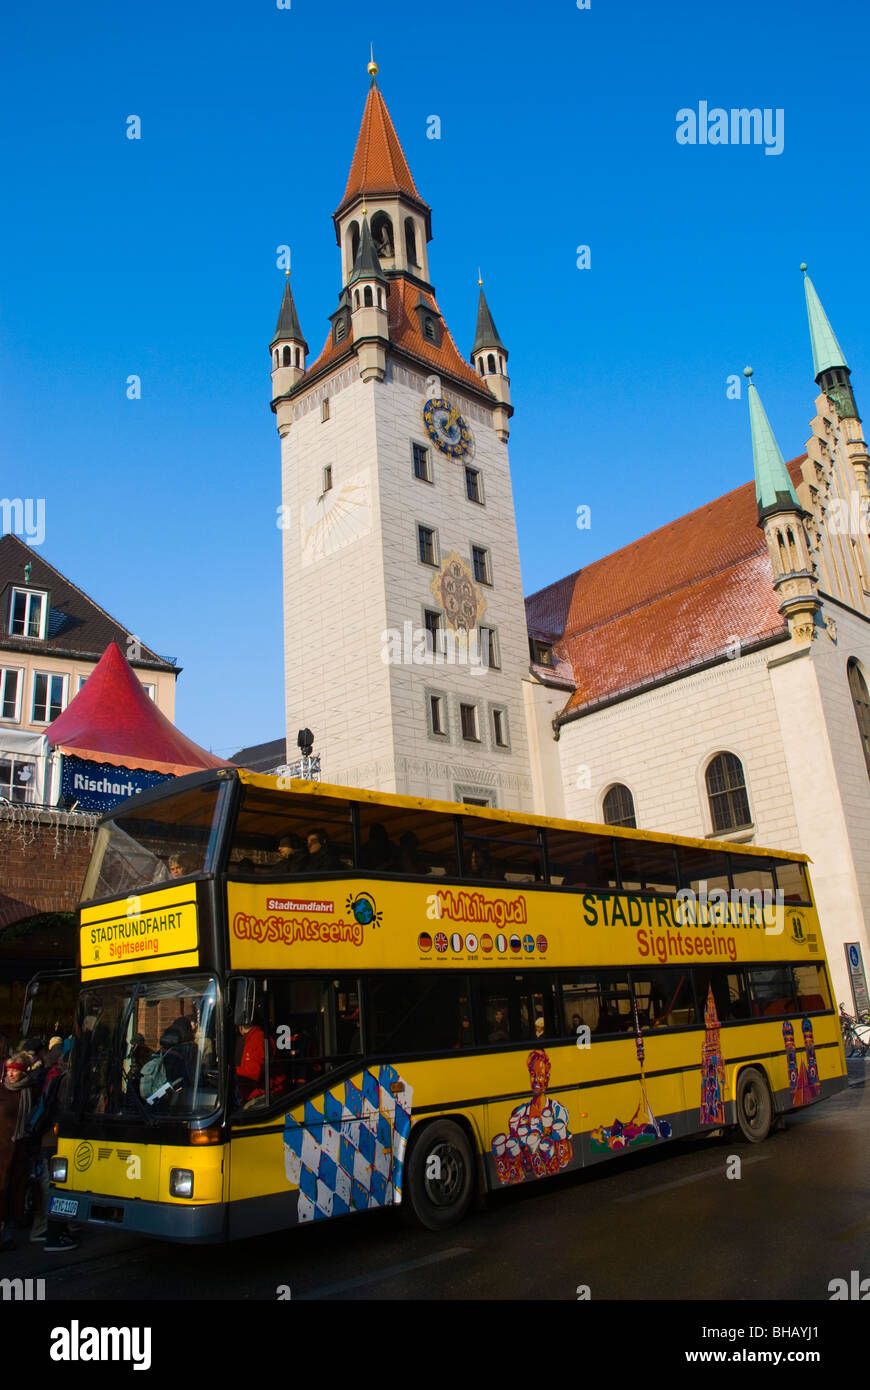 Sightseeing bus Viktualienmarkt square old town Munich Bavaria Germany Europe - Stock Image